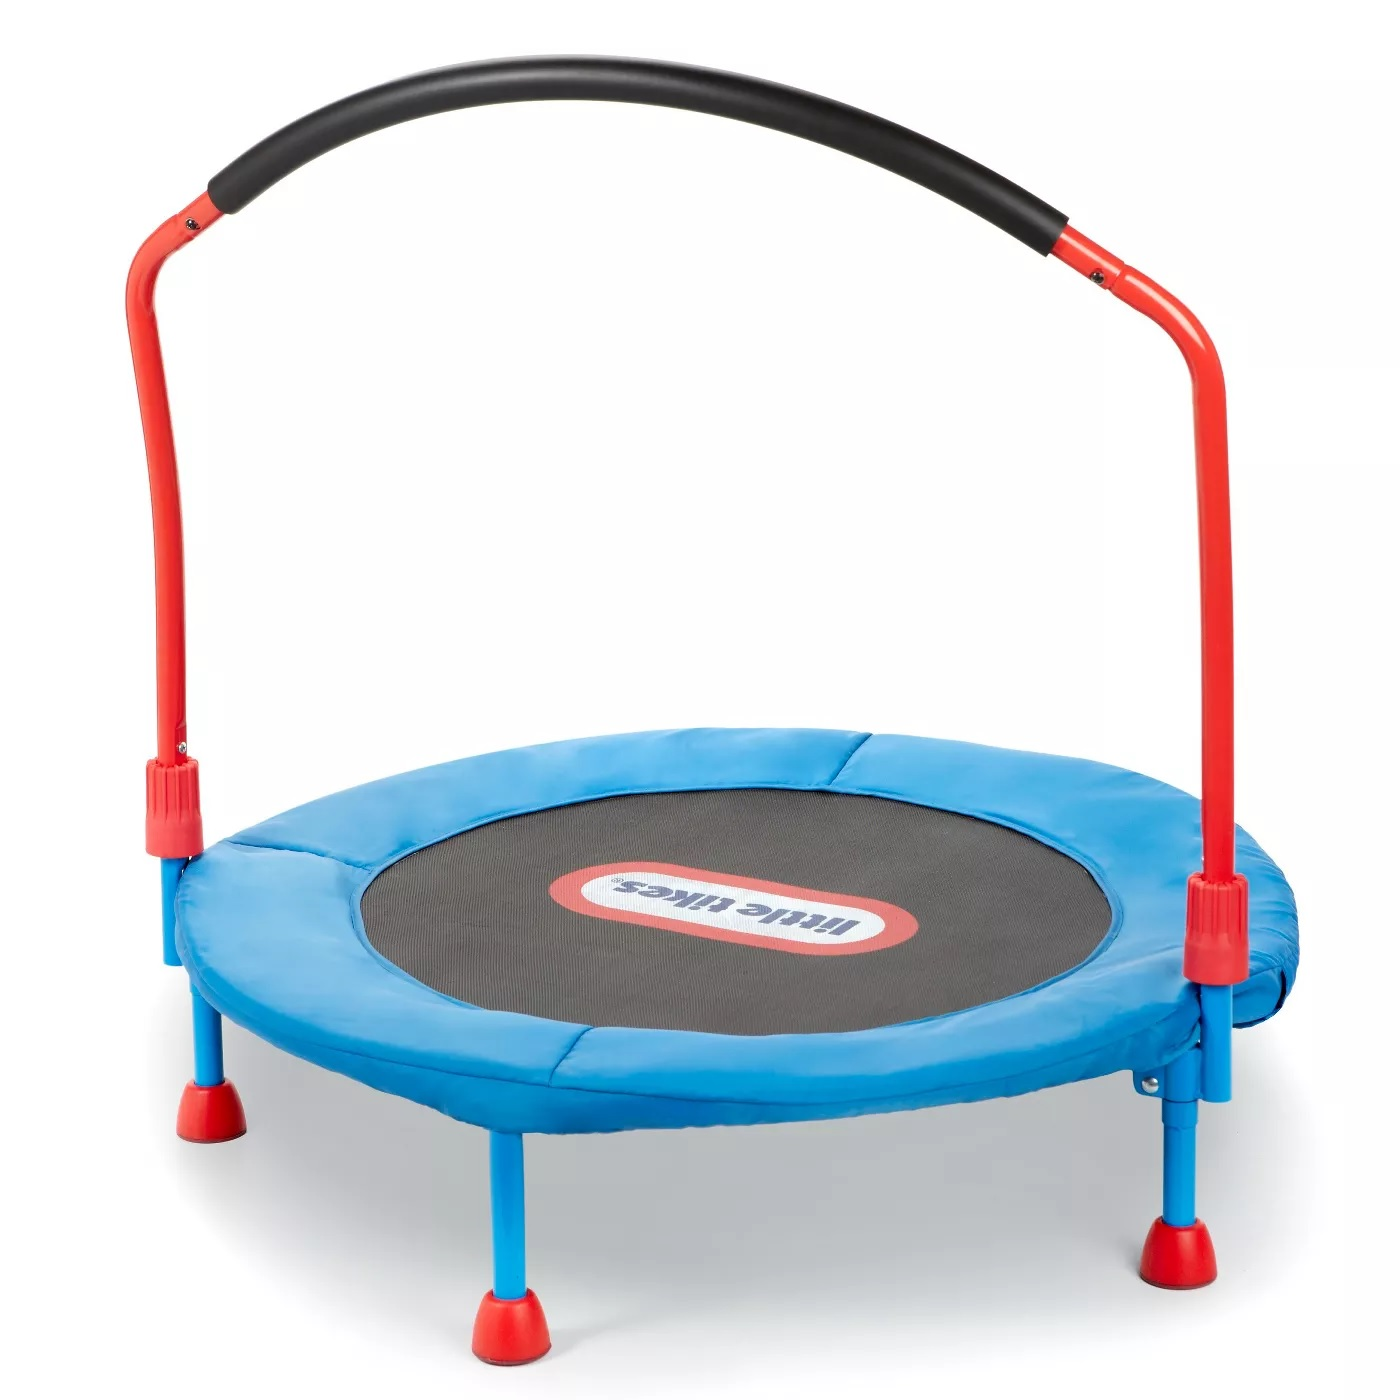 trampolines & accessories image